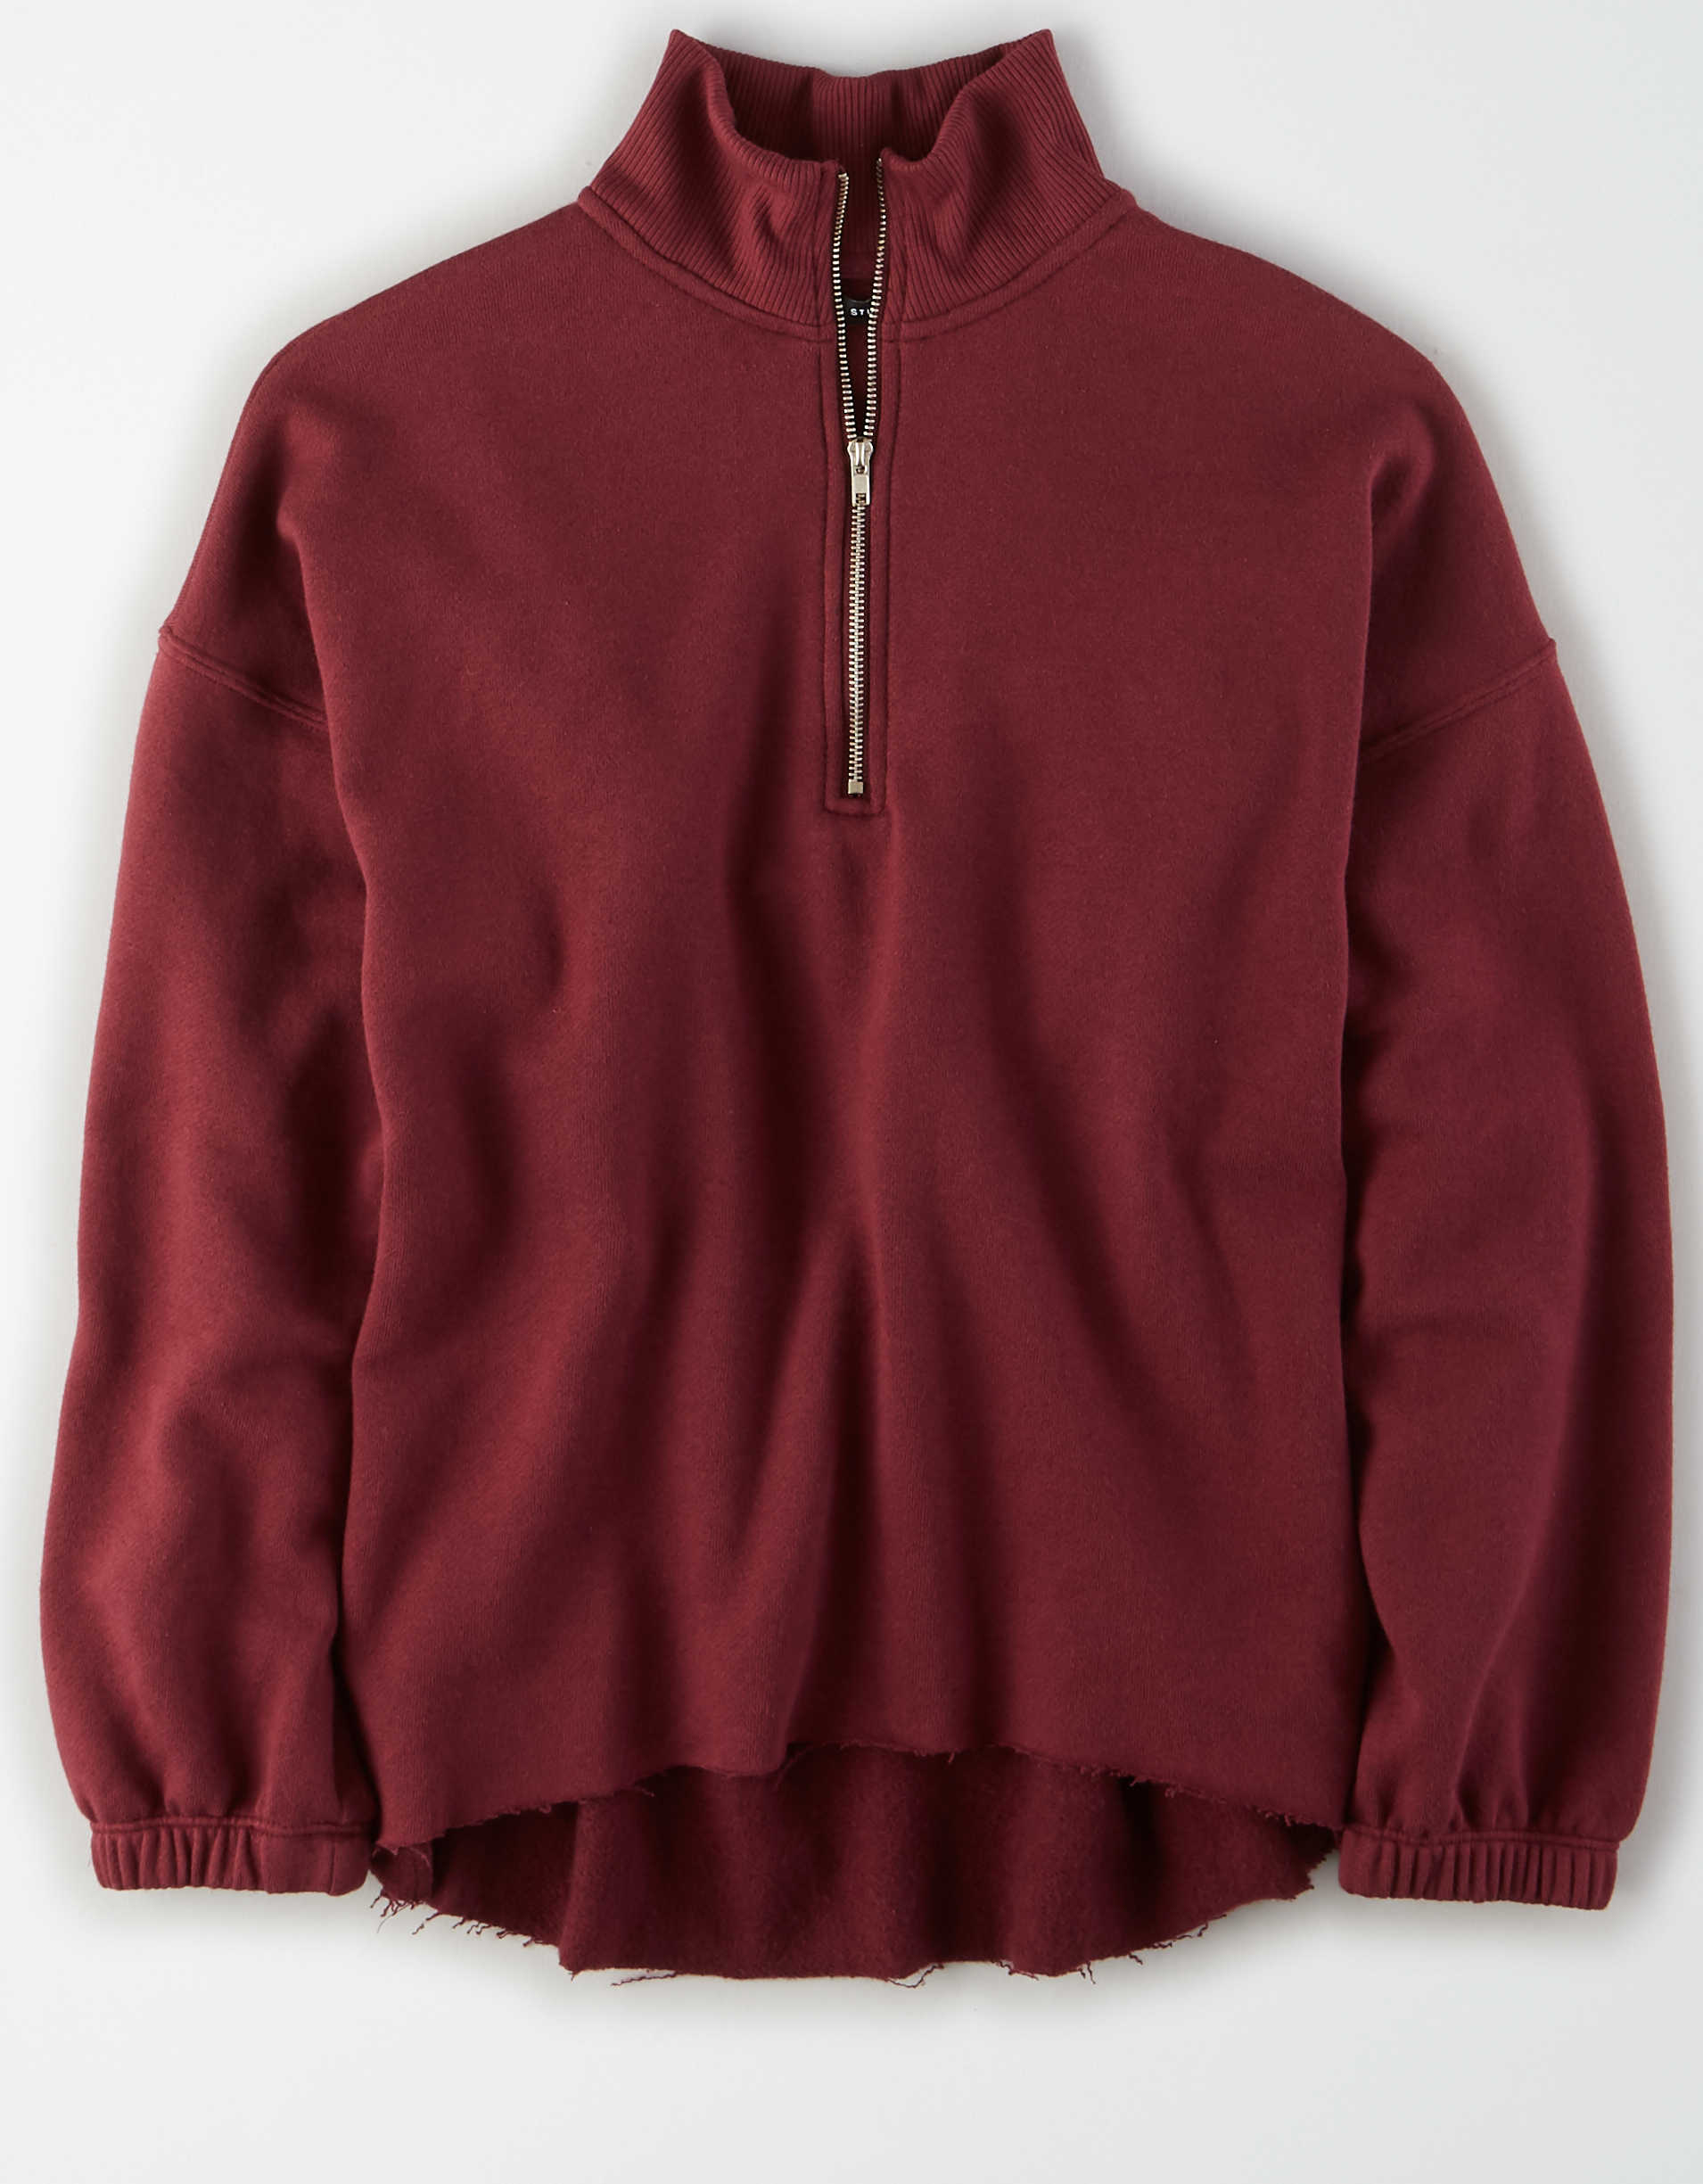 AE Fleece Oversized Quarter Zip Sweatshirt